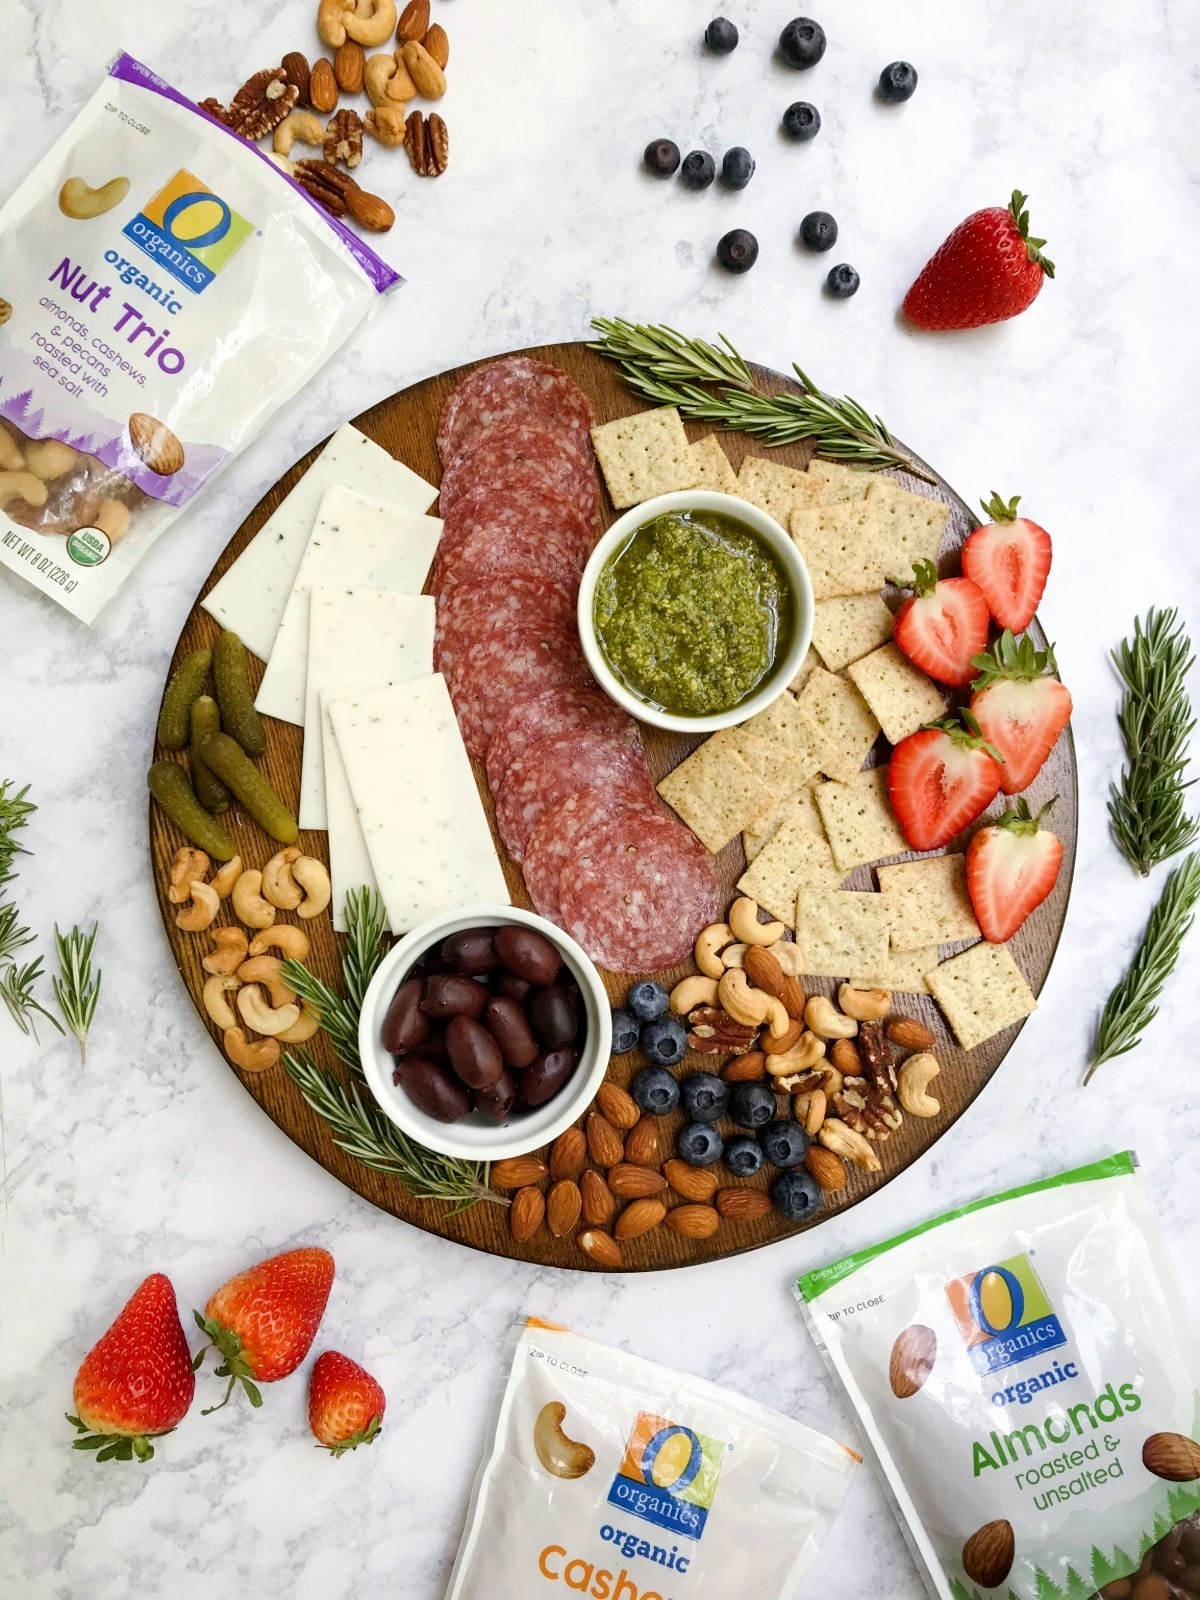 A charcuterie board that is gluten and dairy-free with a variety of ingredients such as meat, cheese, crackers, nuts, fruit, etc. Displaying O Organics Nuts in the background.